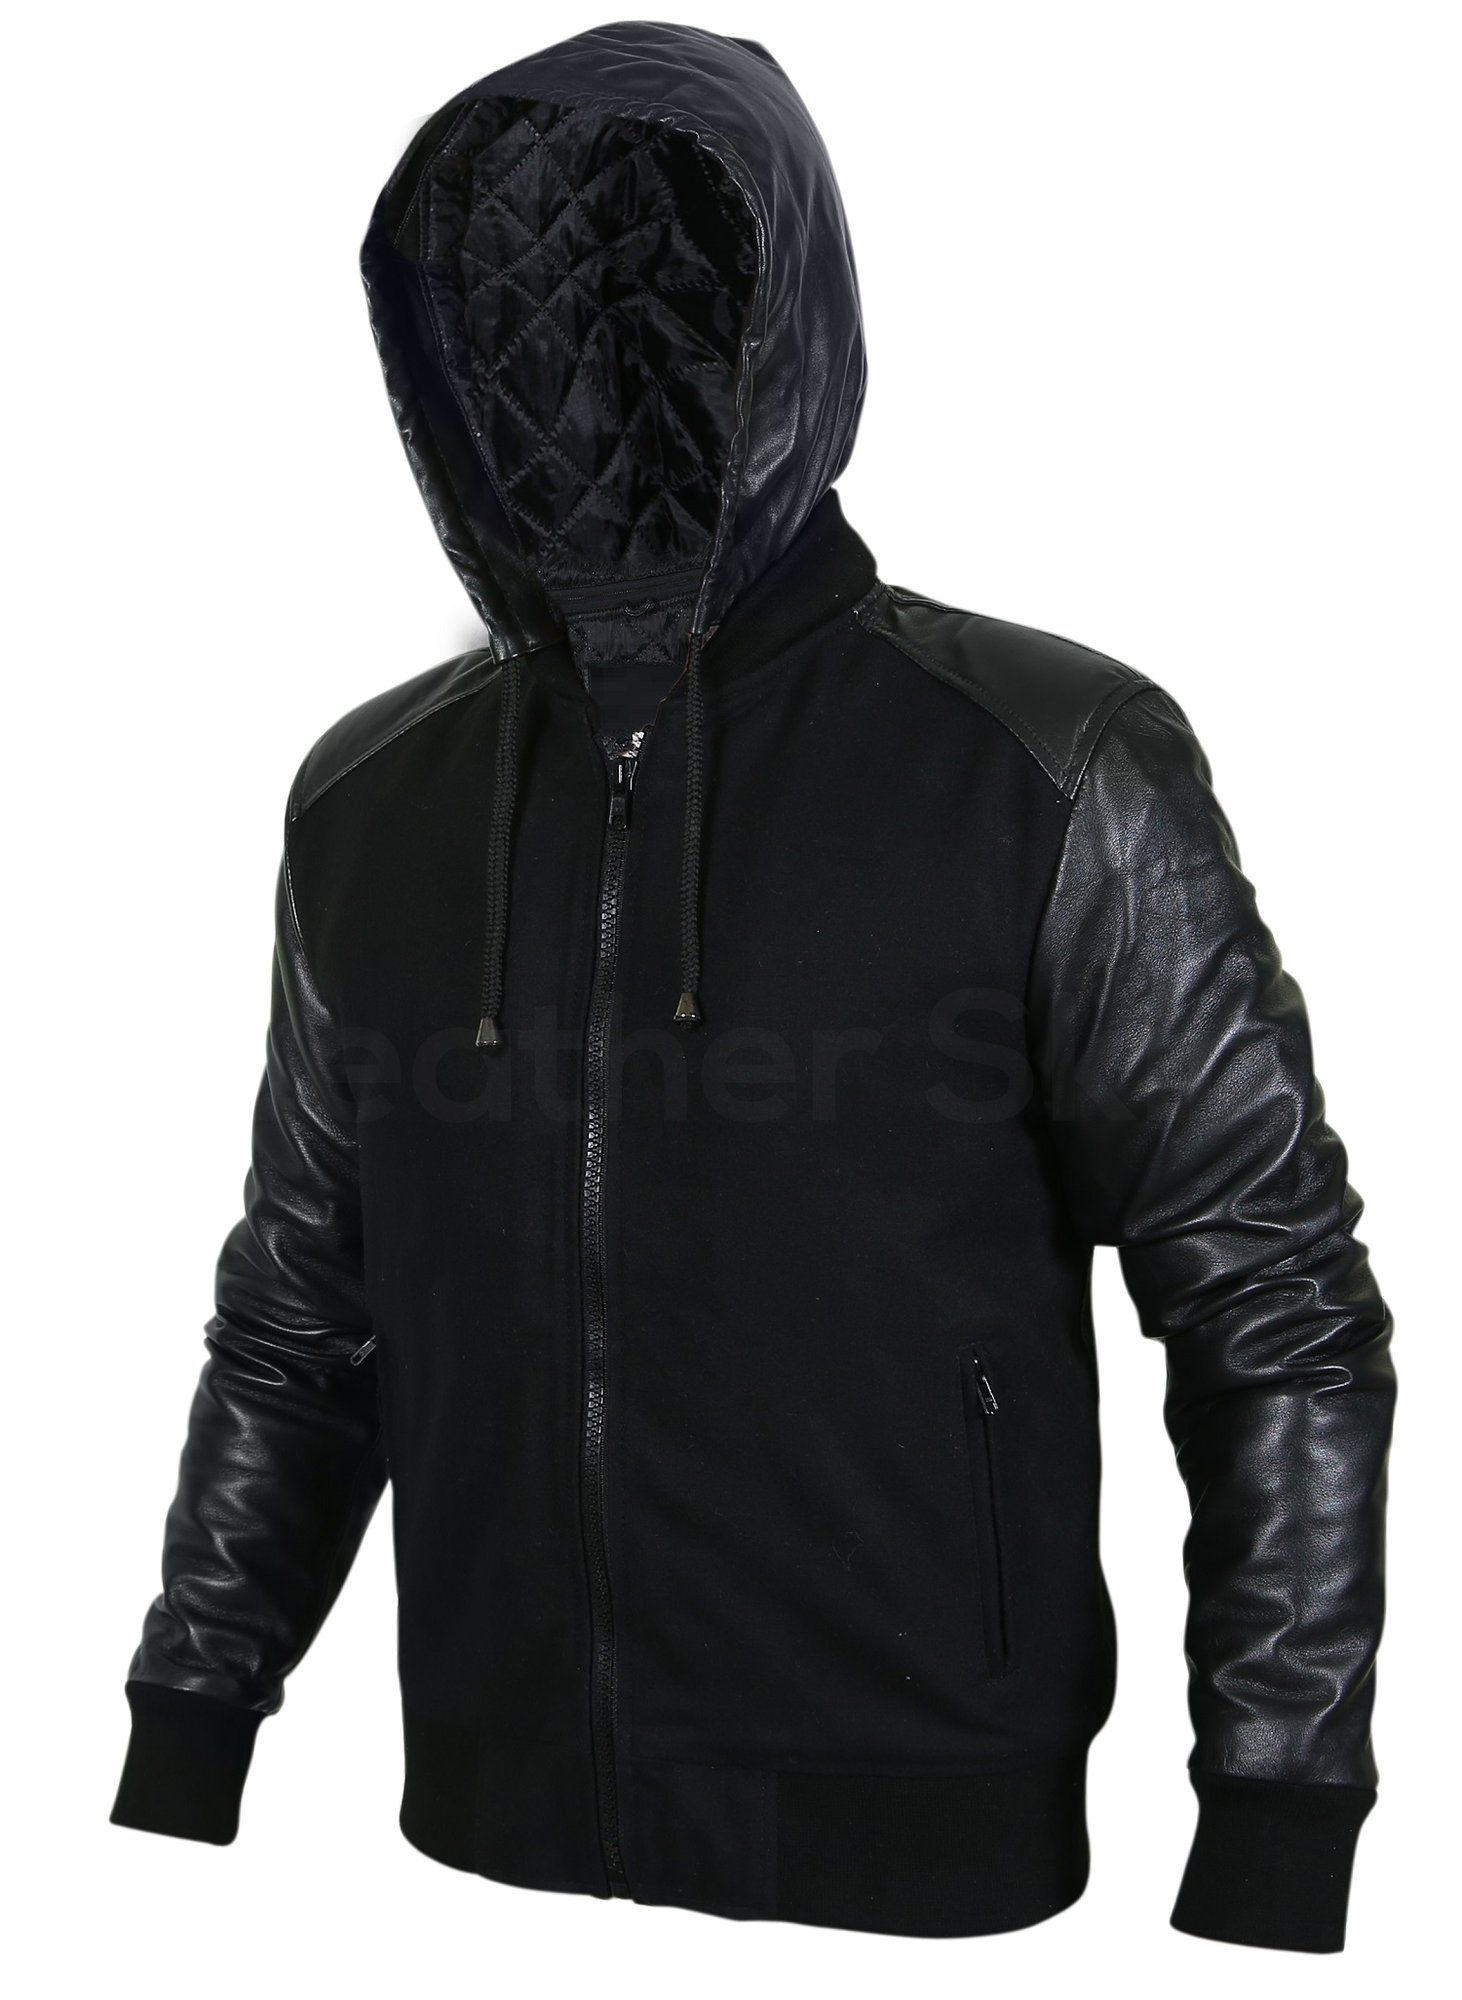 Men Black Hooded Jacket With Leather Sleeves Black Hooded Jacket Leather Jacket Black Leather Jacket With Hood [ 2000 x 1462 Pixel ]